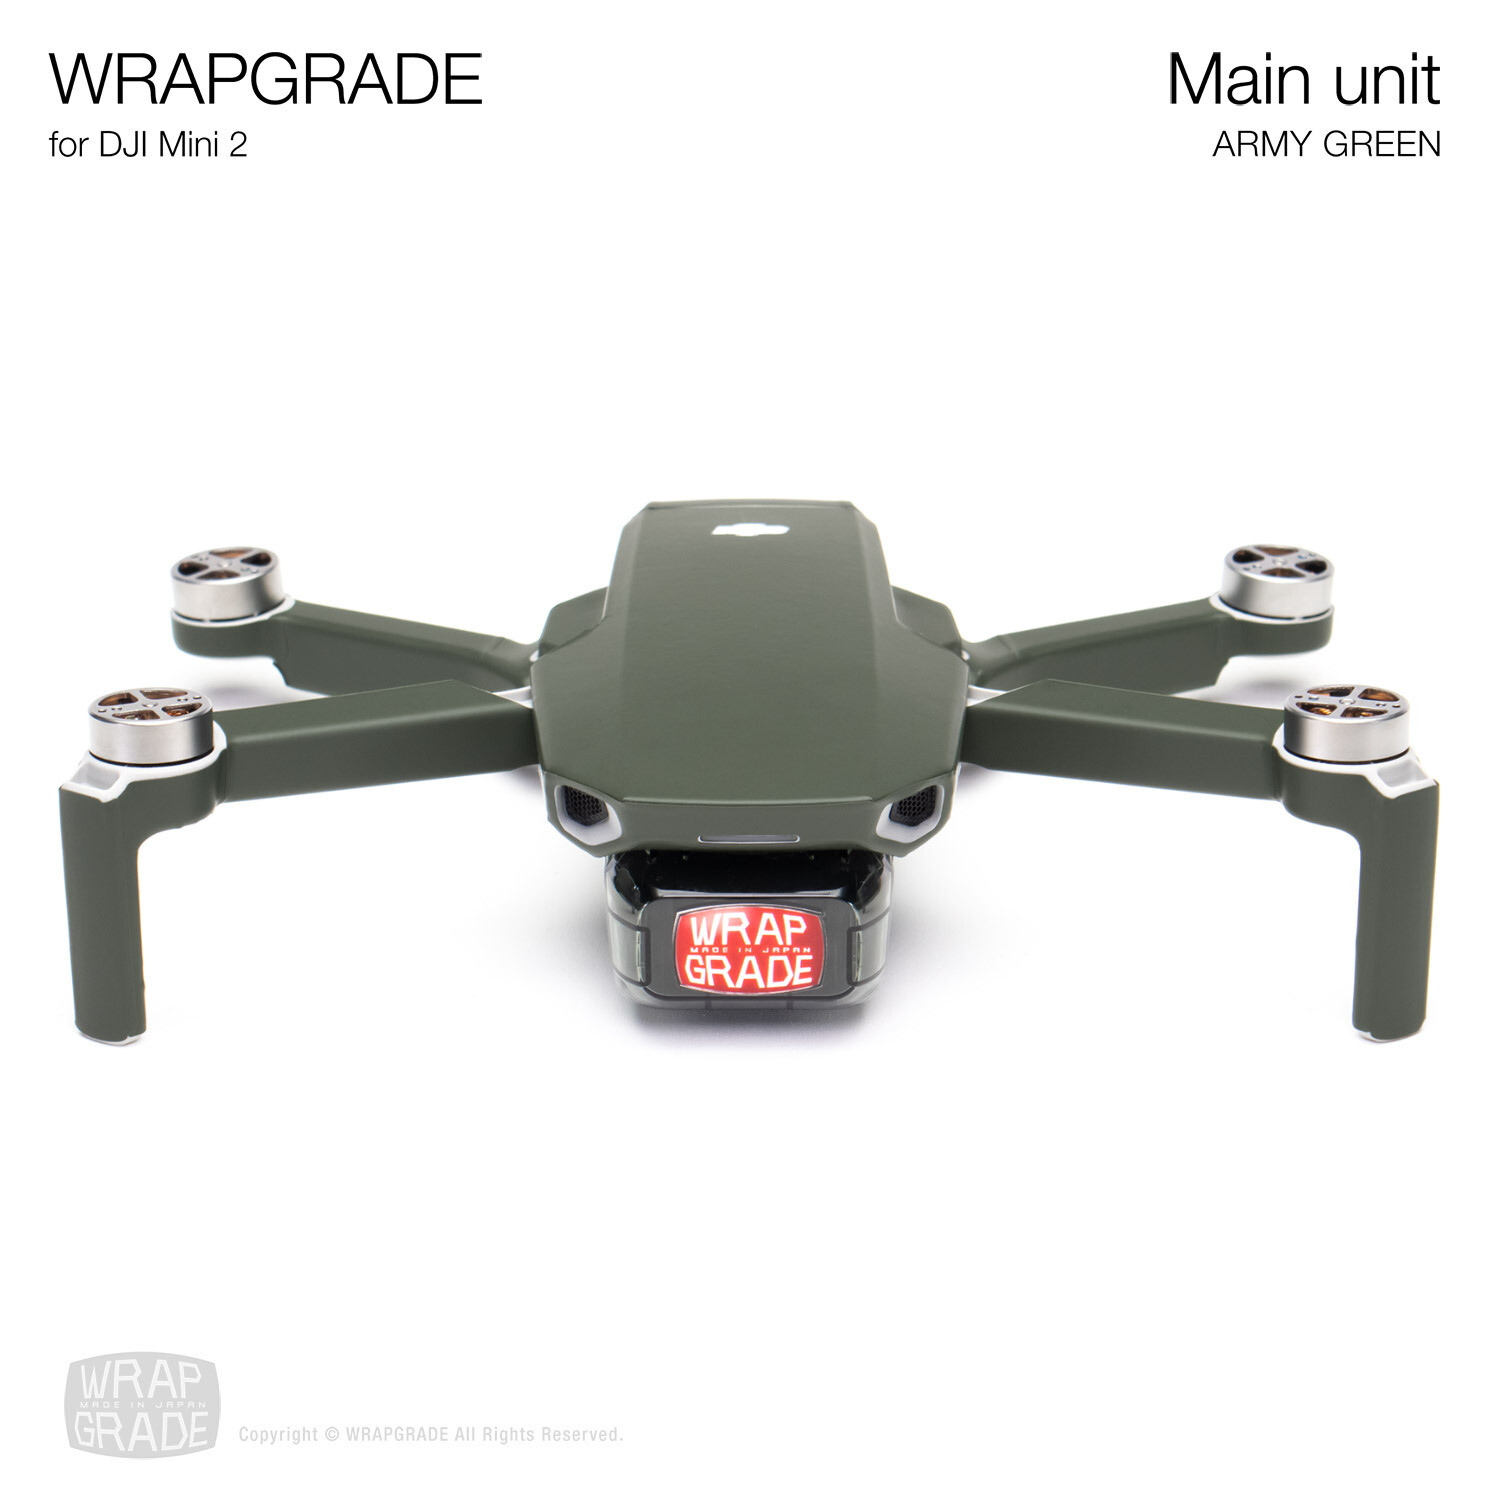 Wrapgrade Poly Skin for DJI Mini 2 | Main Unit (ARMY GREEN)